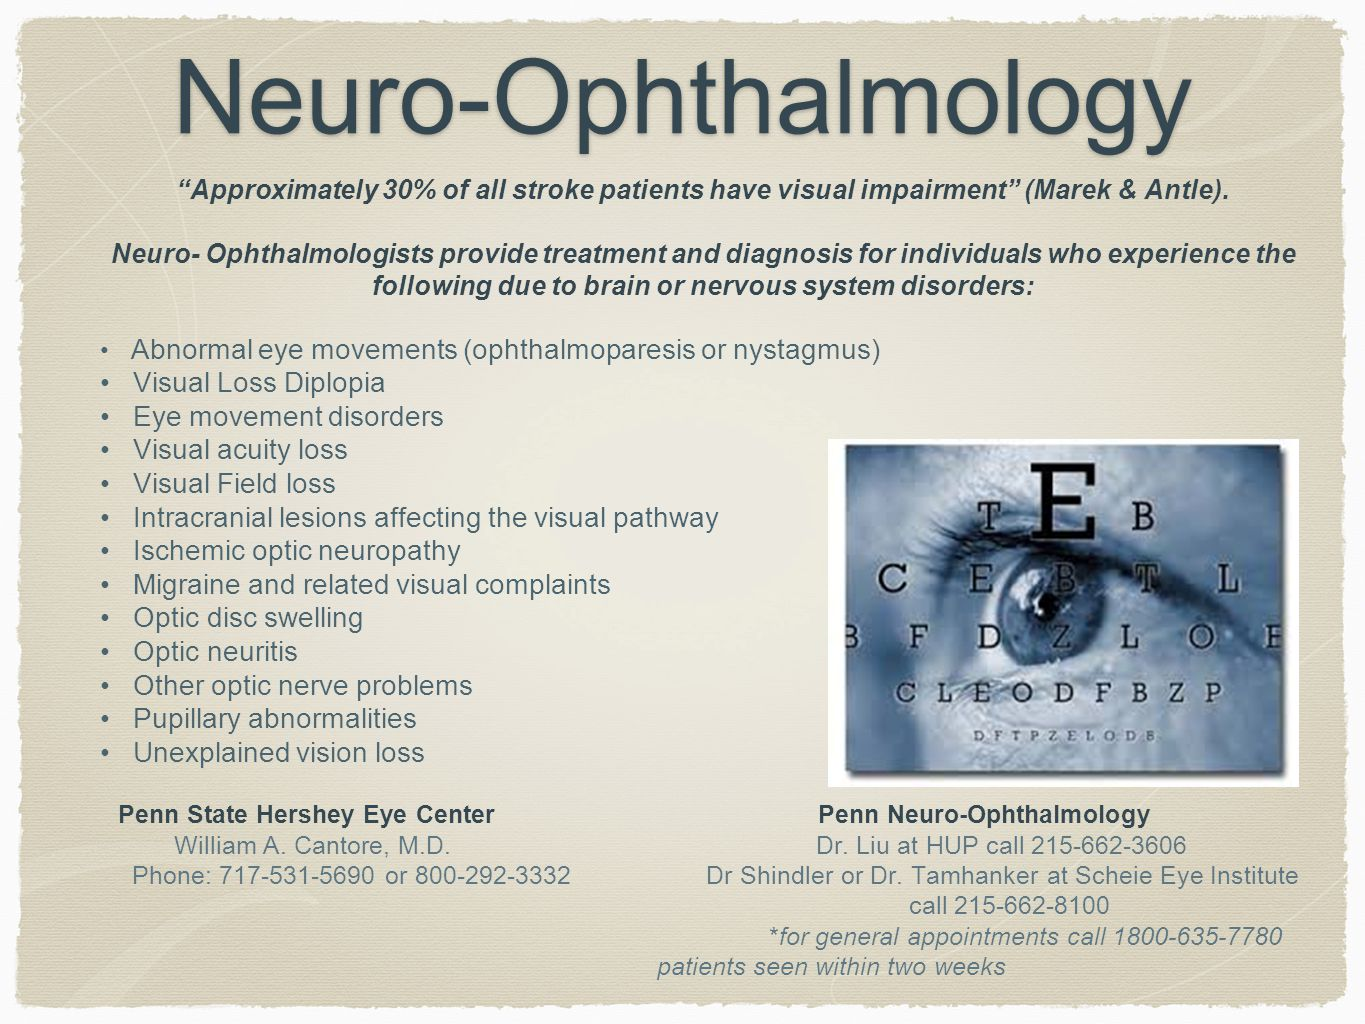 Neuro-Ophthalmology Approximately 30% of all stroke patients have visual impairment (Marek & Antle).